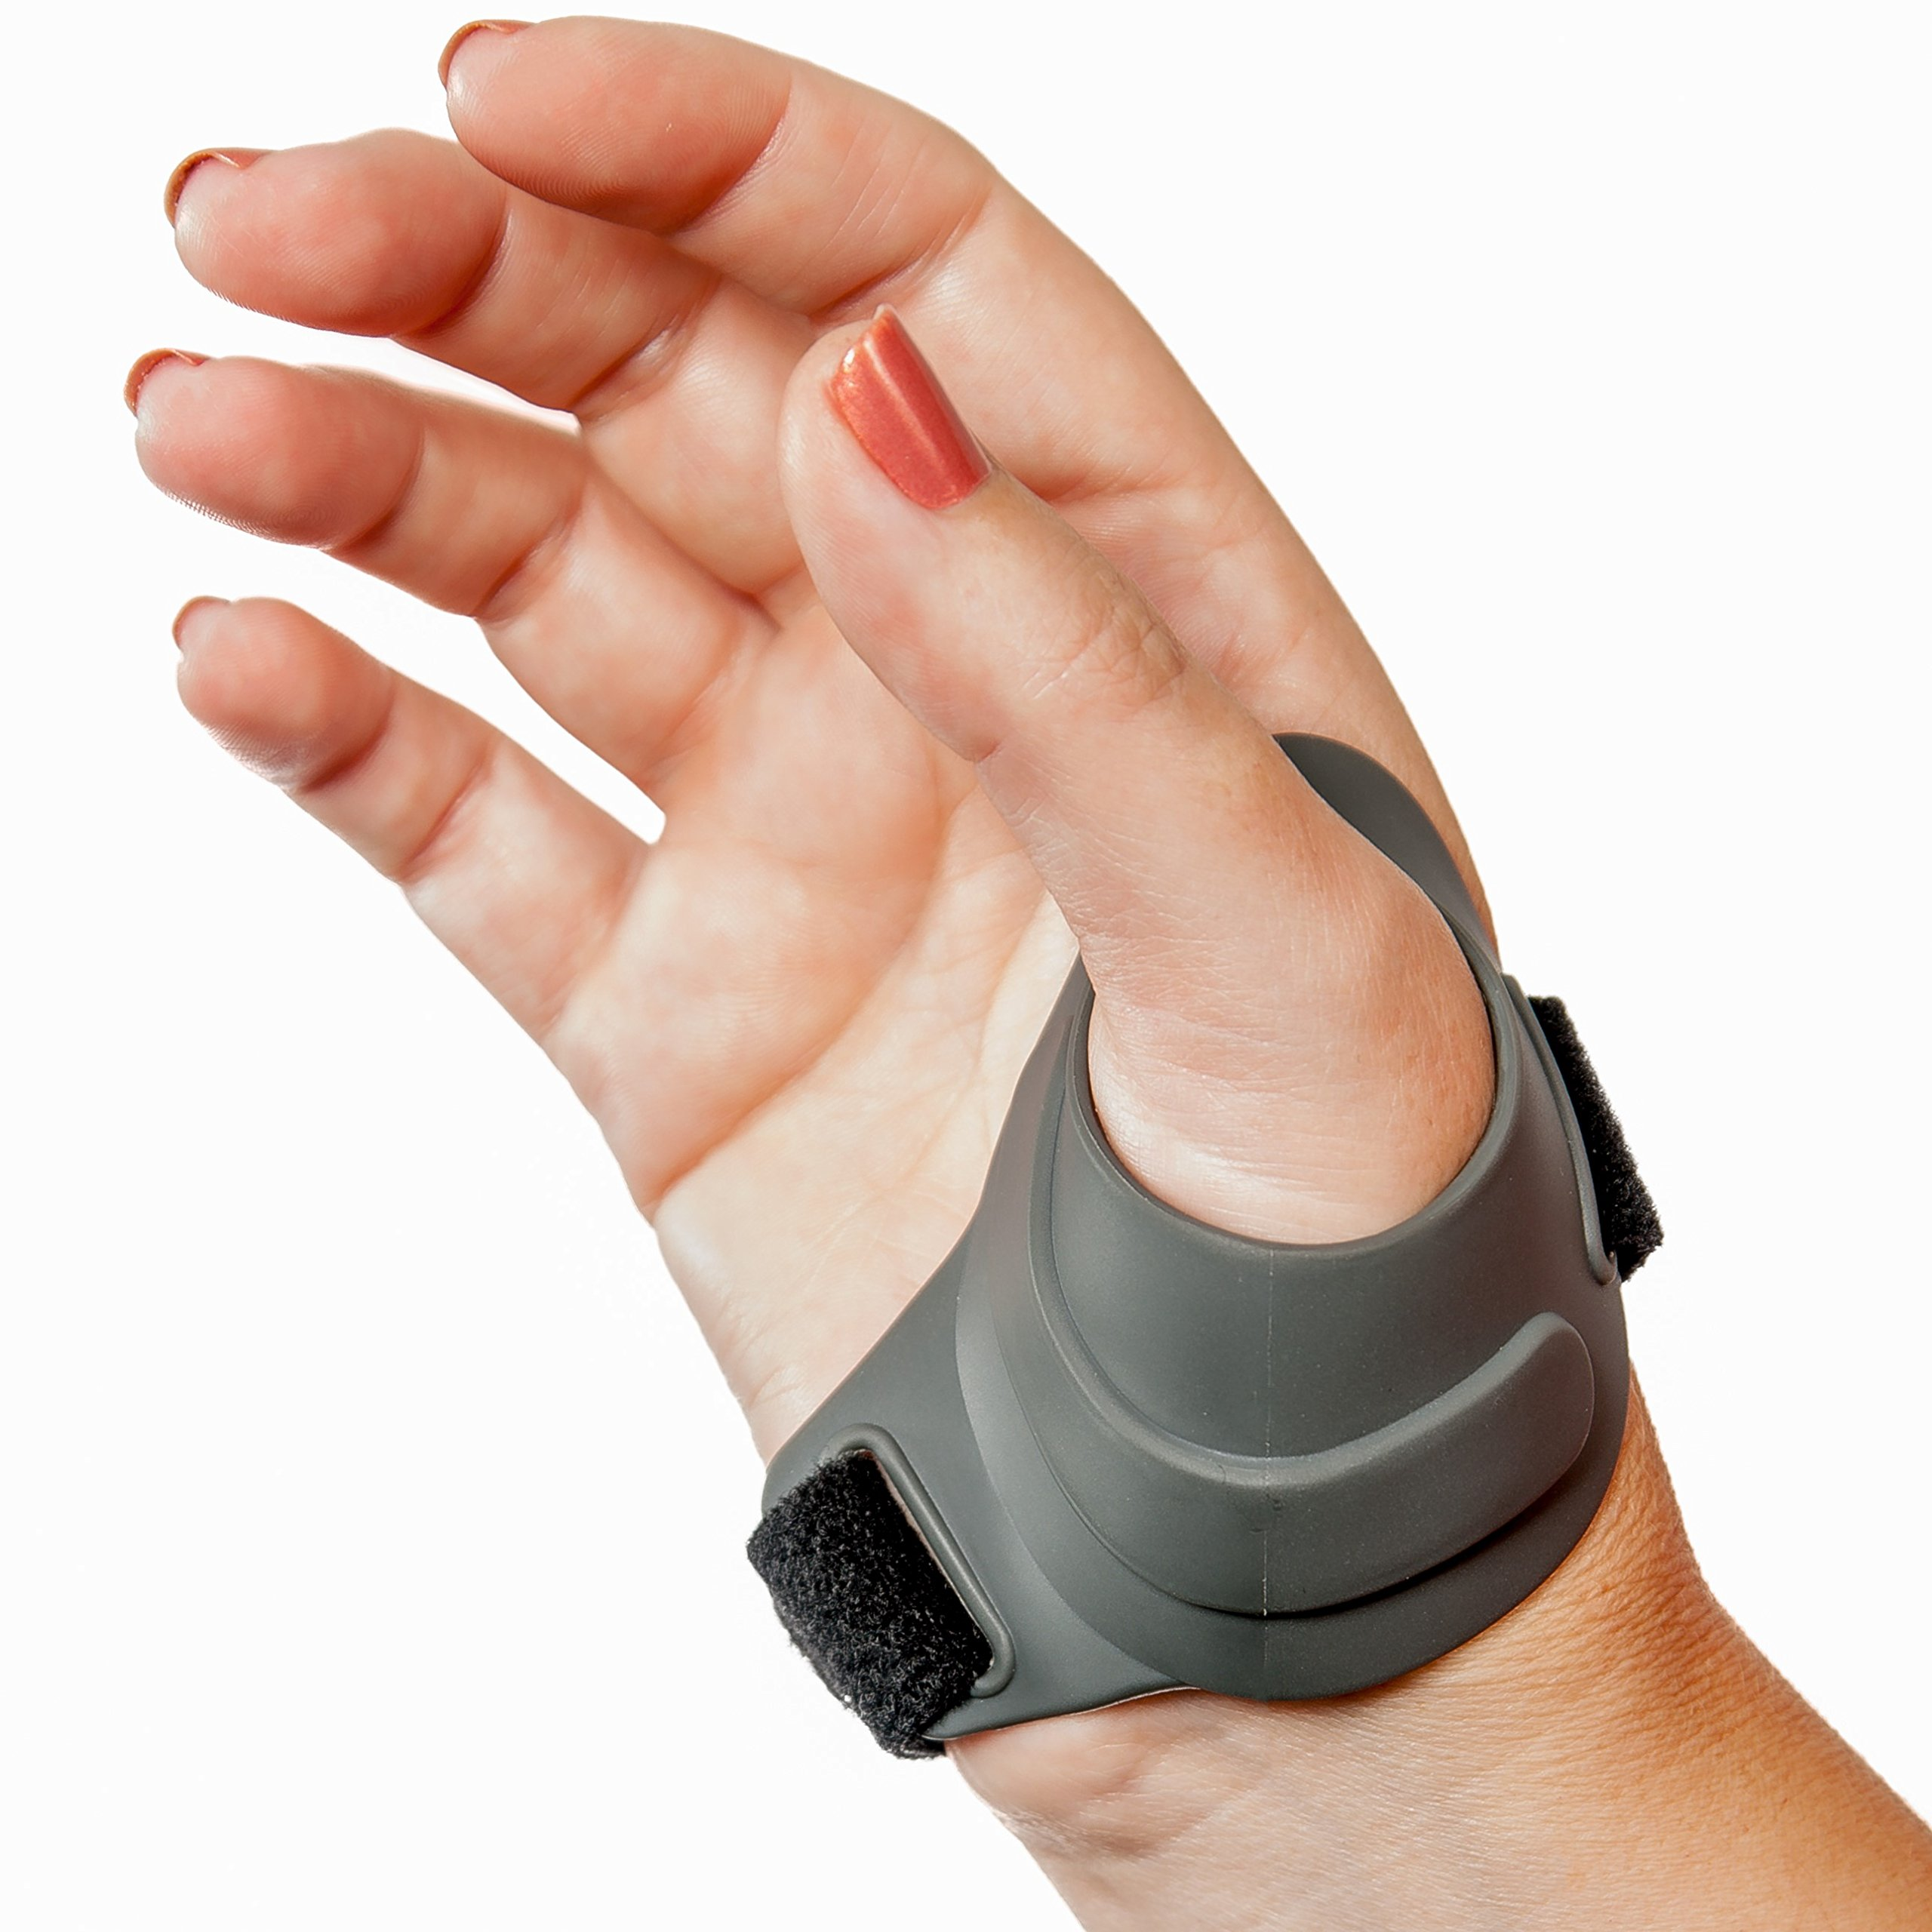 CMCcare Thumb Brace – Durable, Waterproof Brace for Thumb Arthritis Pain Relief, Left Hand, Size Small